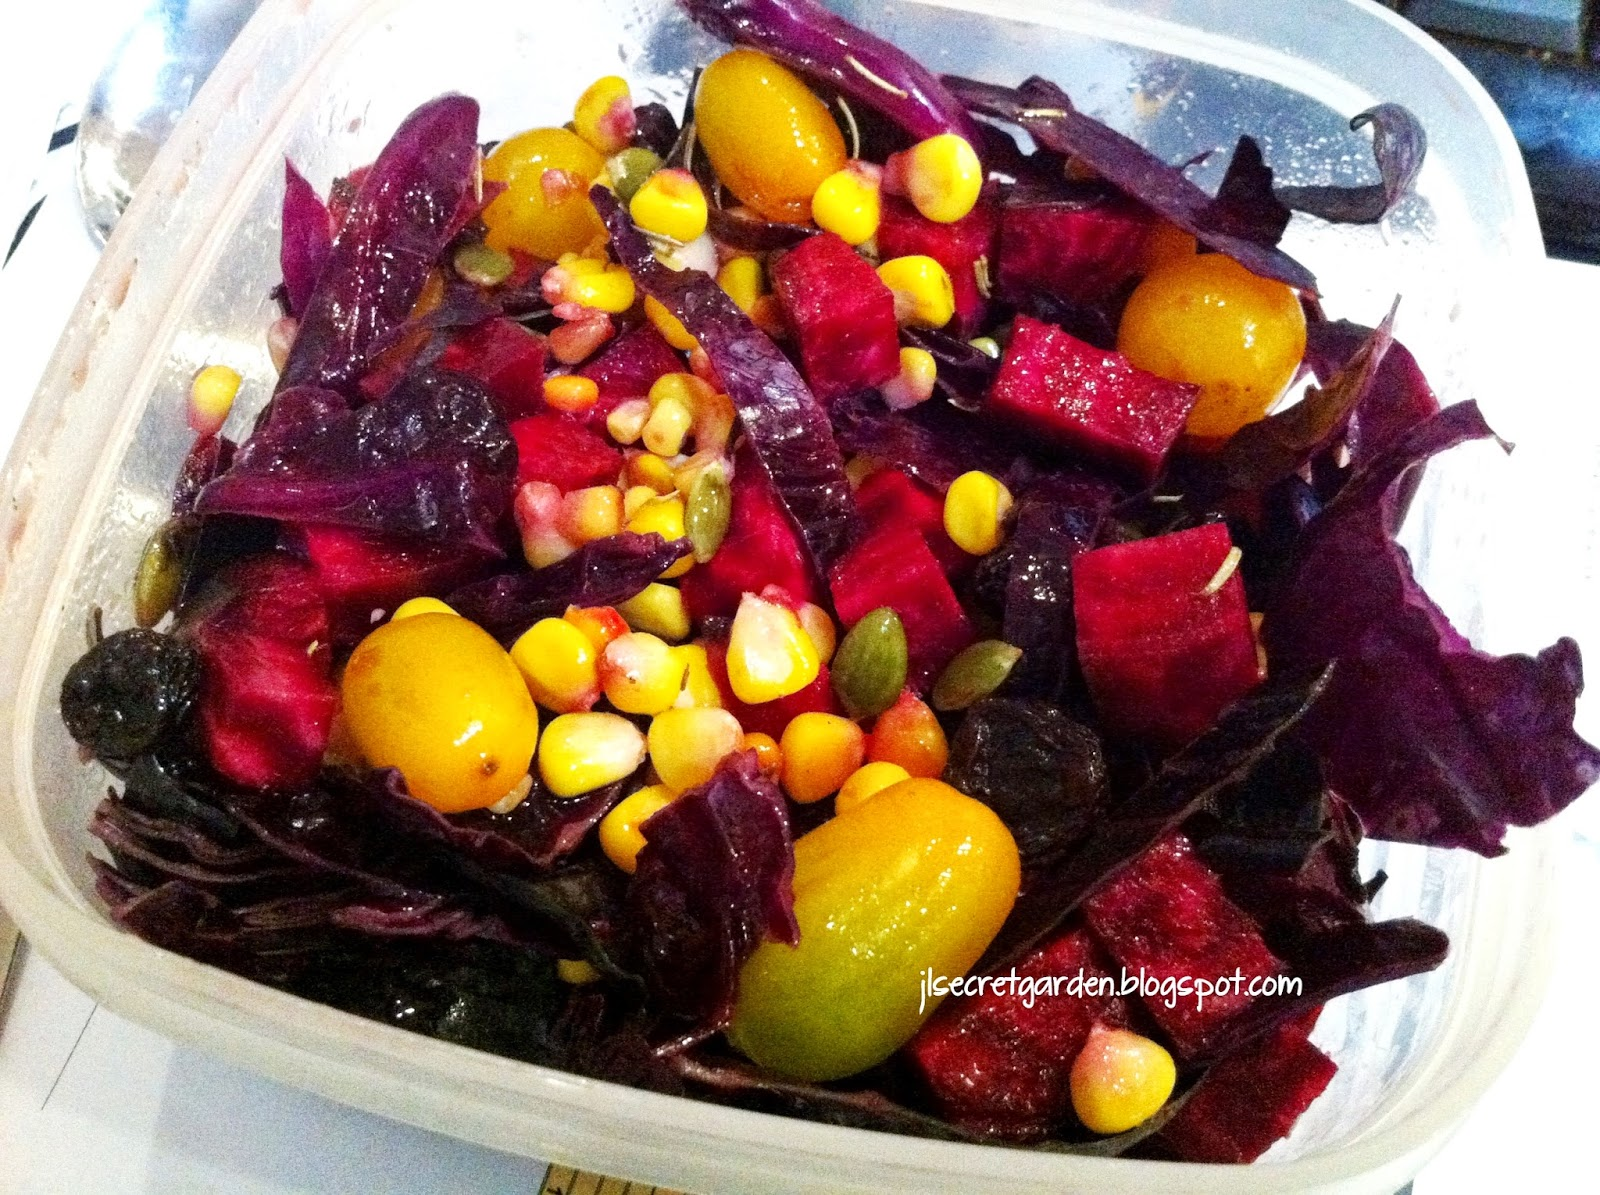 七彩有機沙律 Colorful Garden Salad